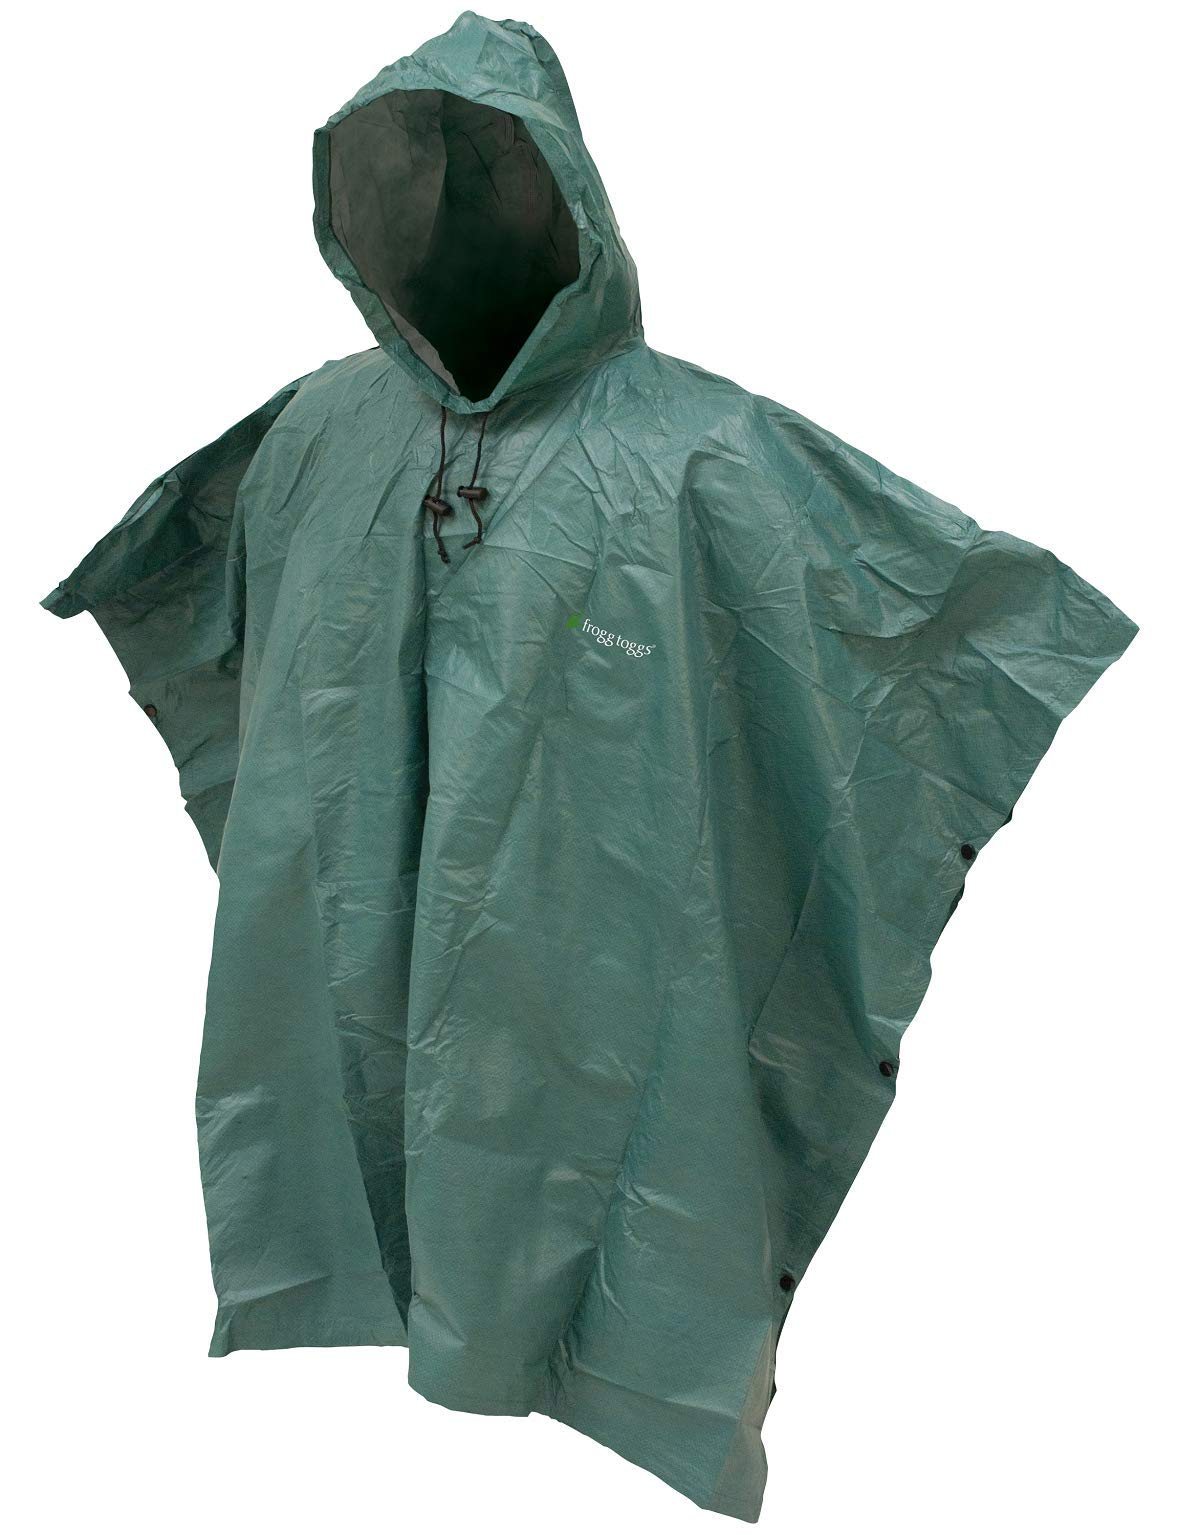 FROGG TOGGS Men's Standard Ultra-Lite2 Waterproof Breathable Poncho